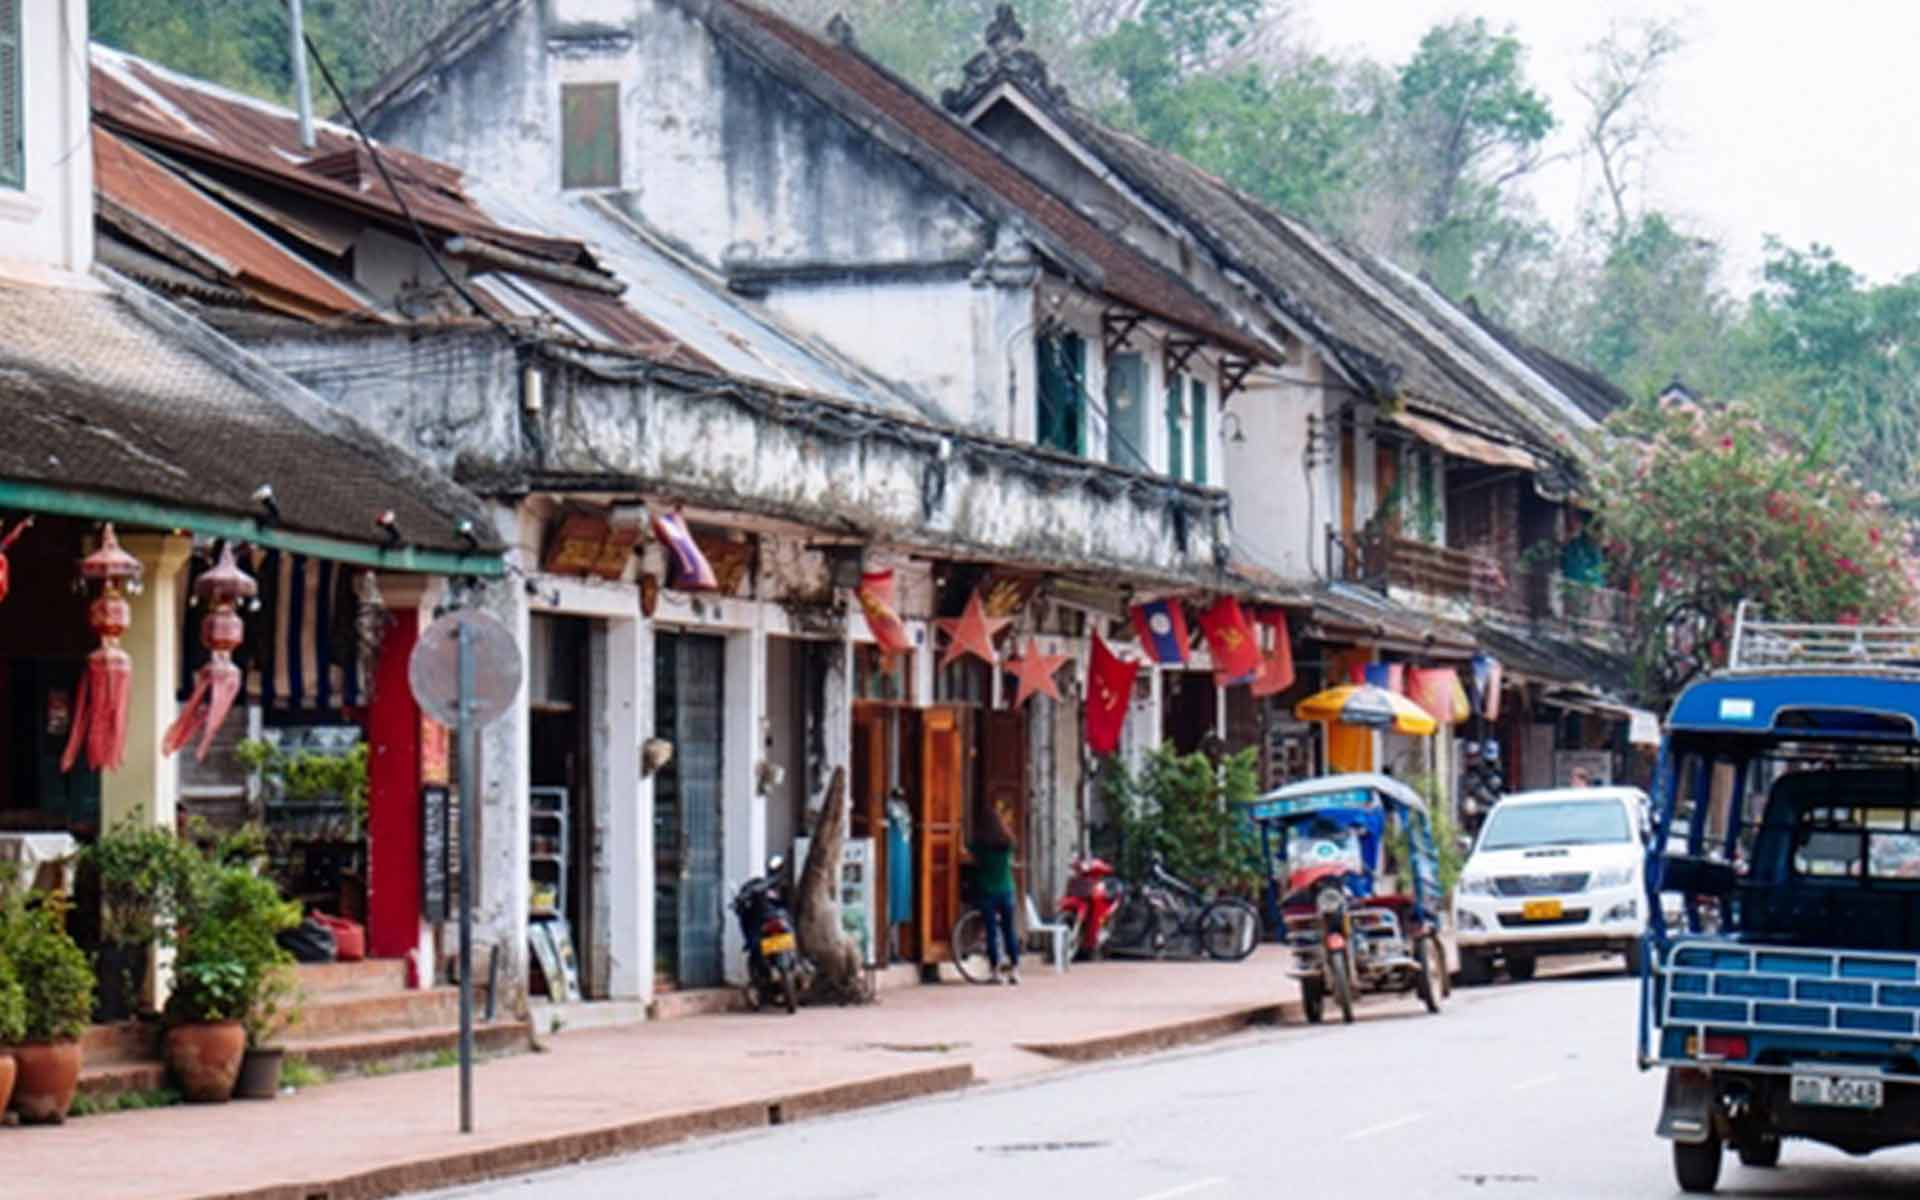 Luang Prabang,This ancient city was recognized by UNESCO and has been a capital until 1975